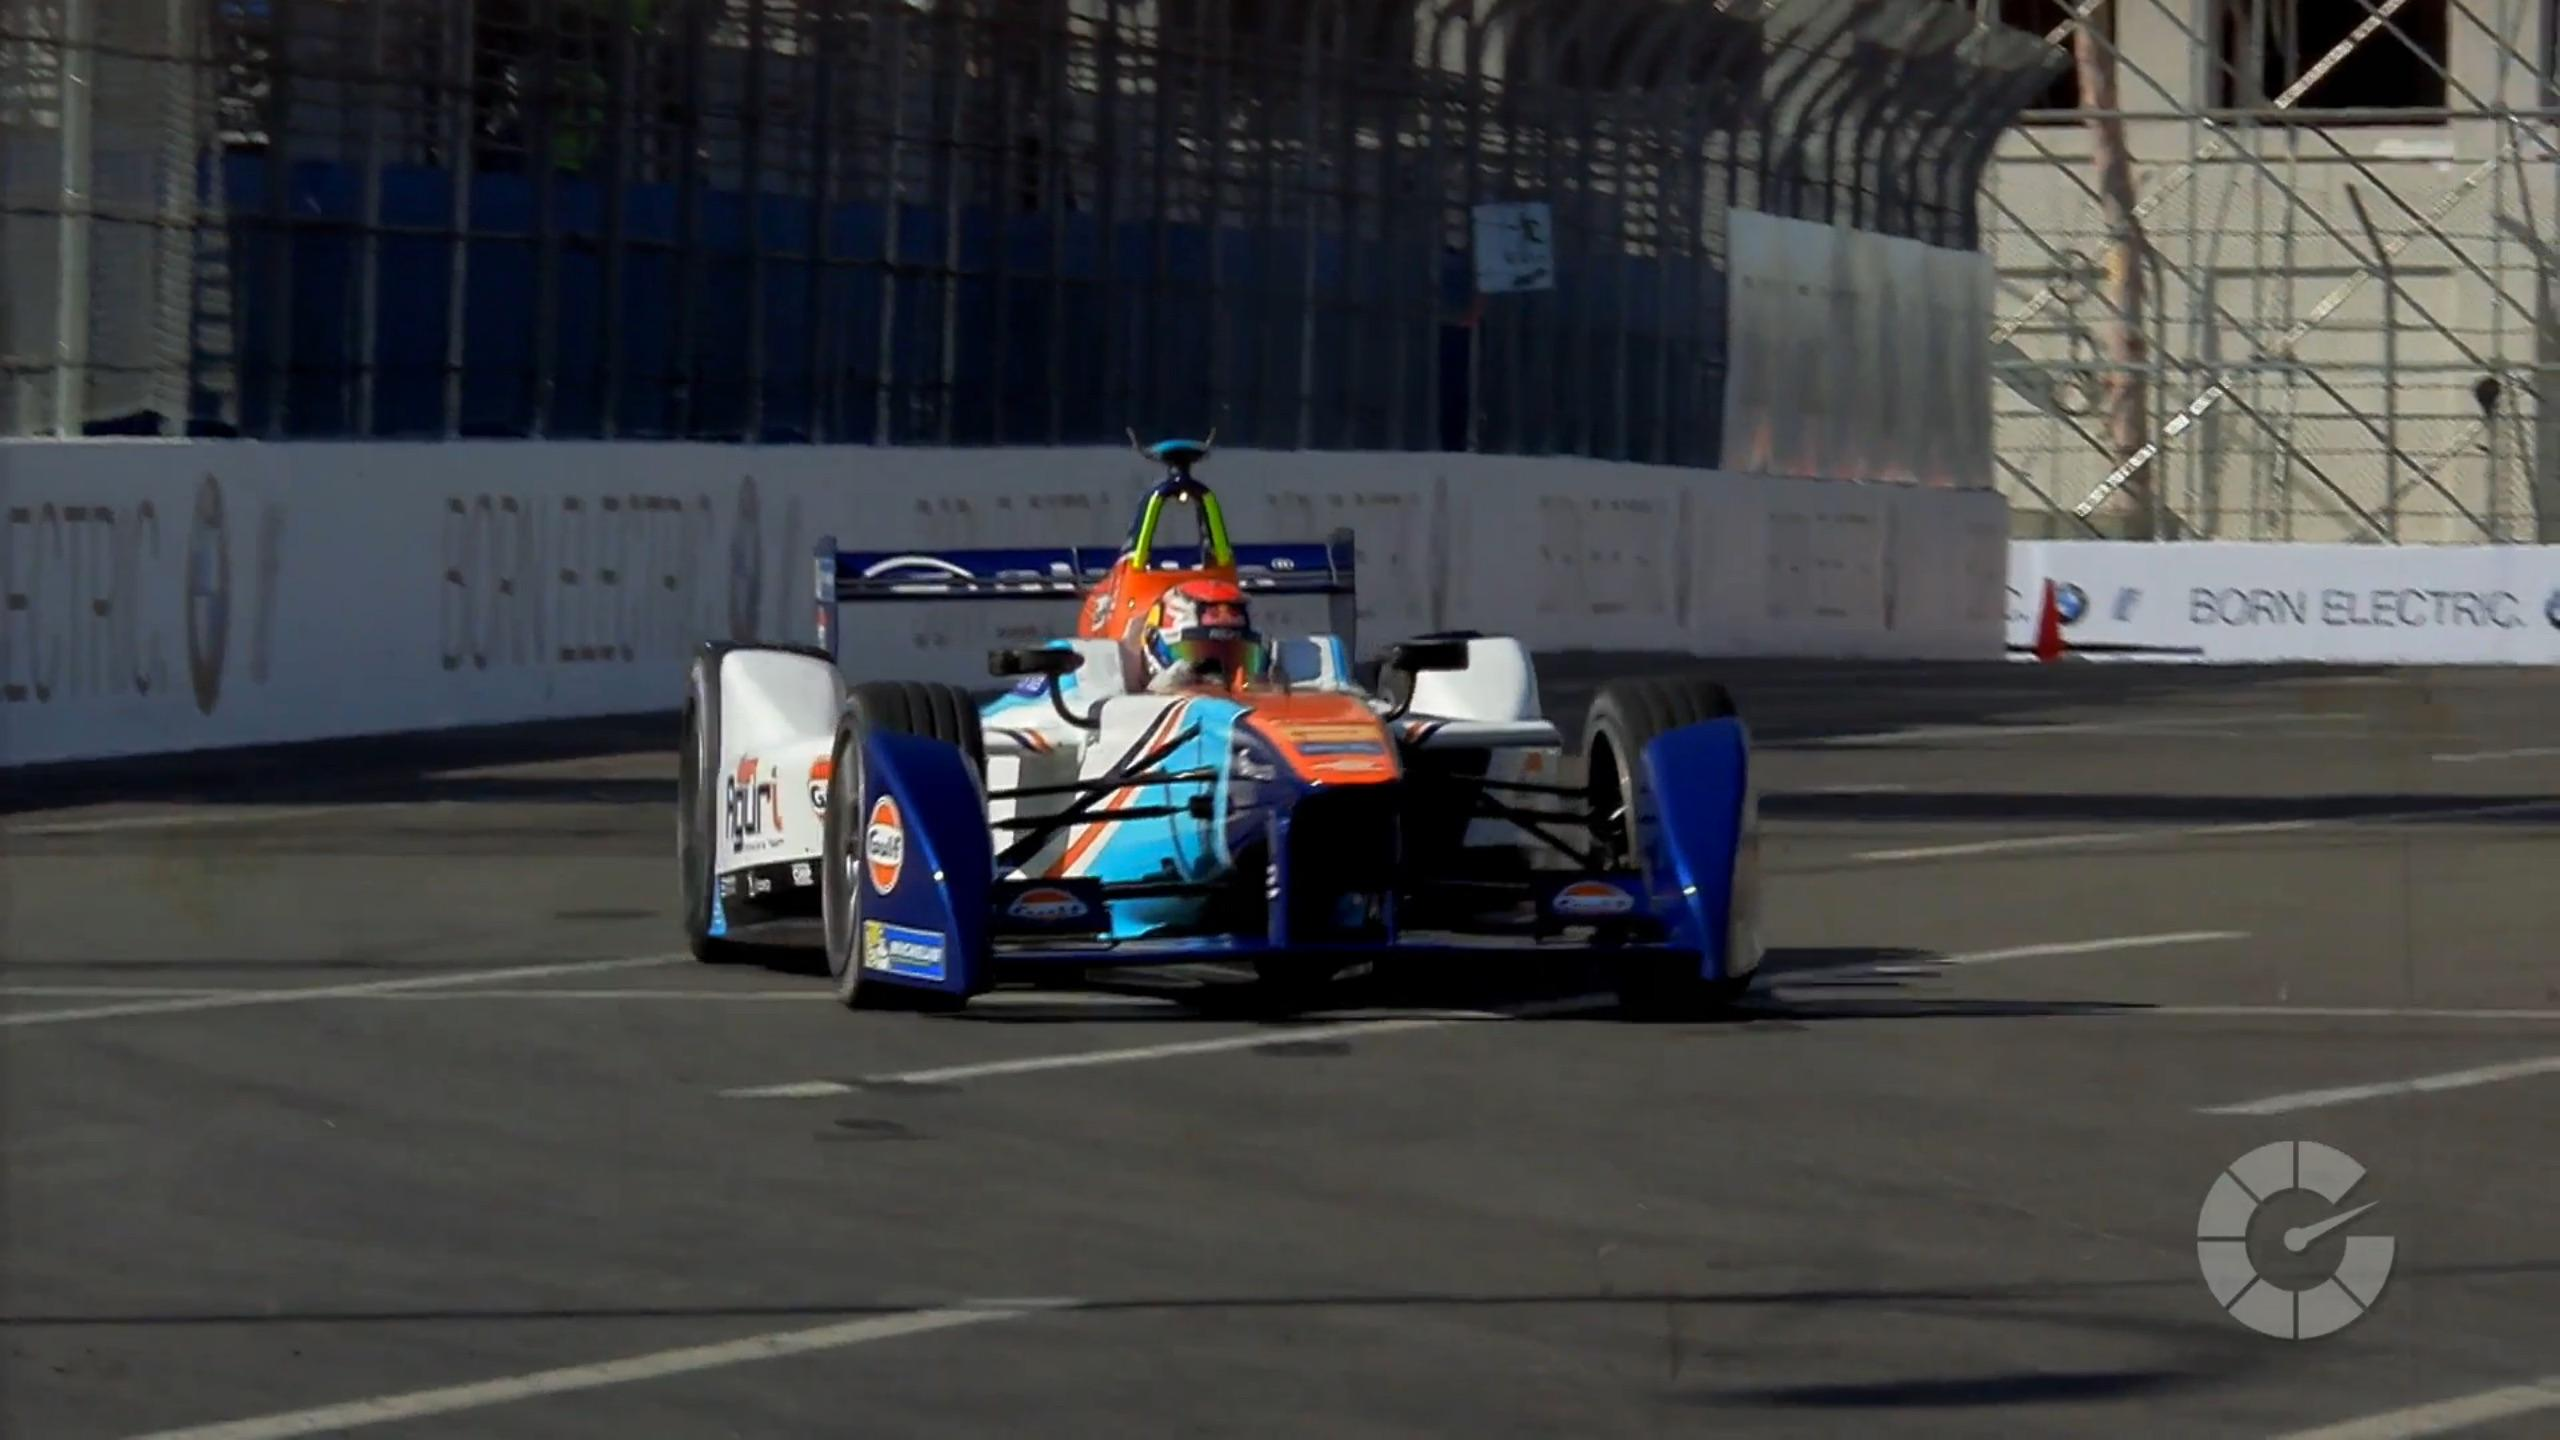 Formula E is on track financially with NYC race coming up  Autoblog